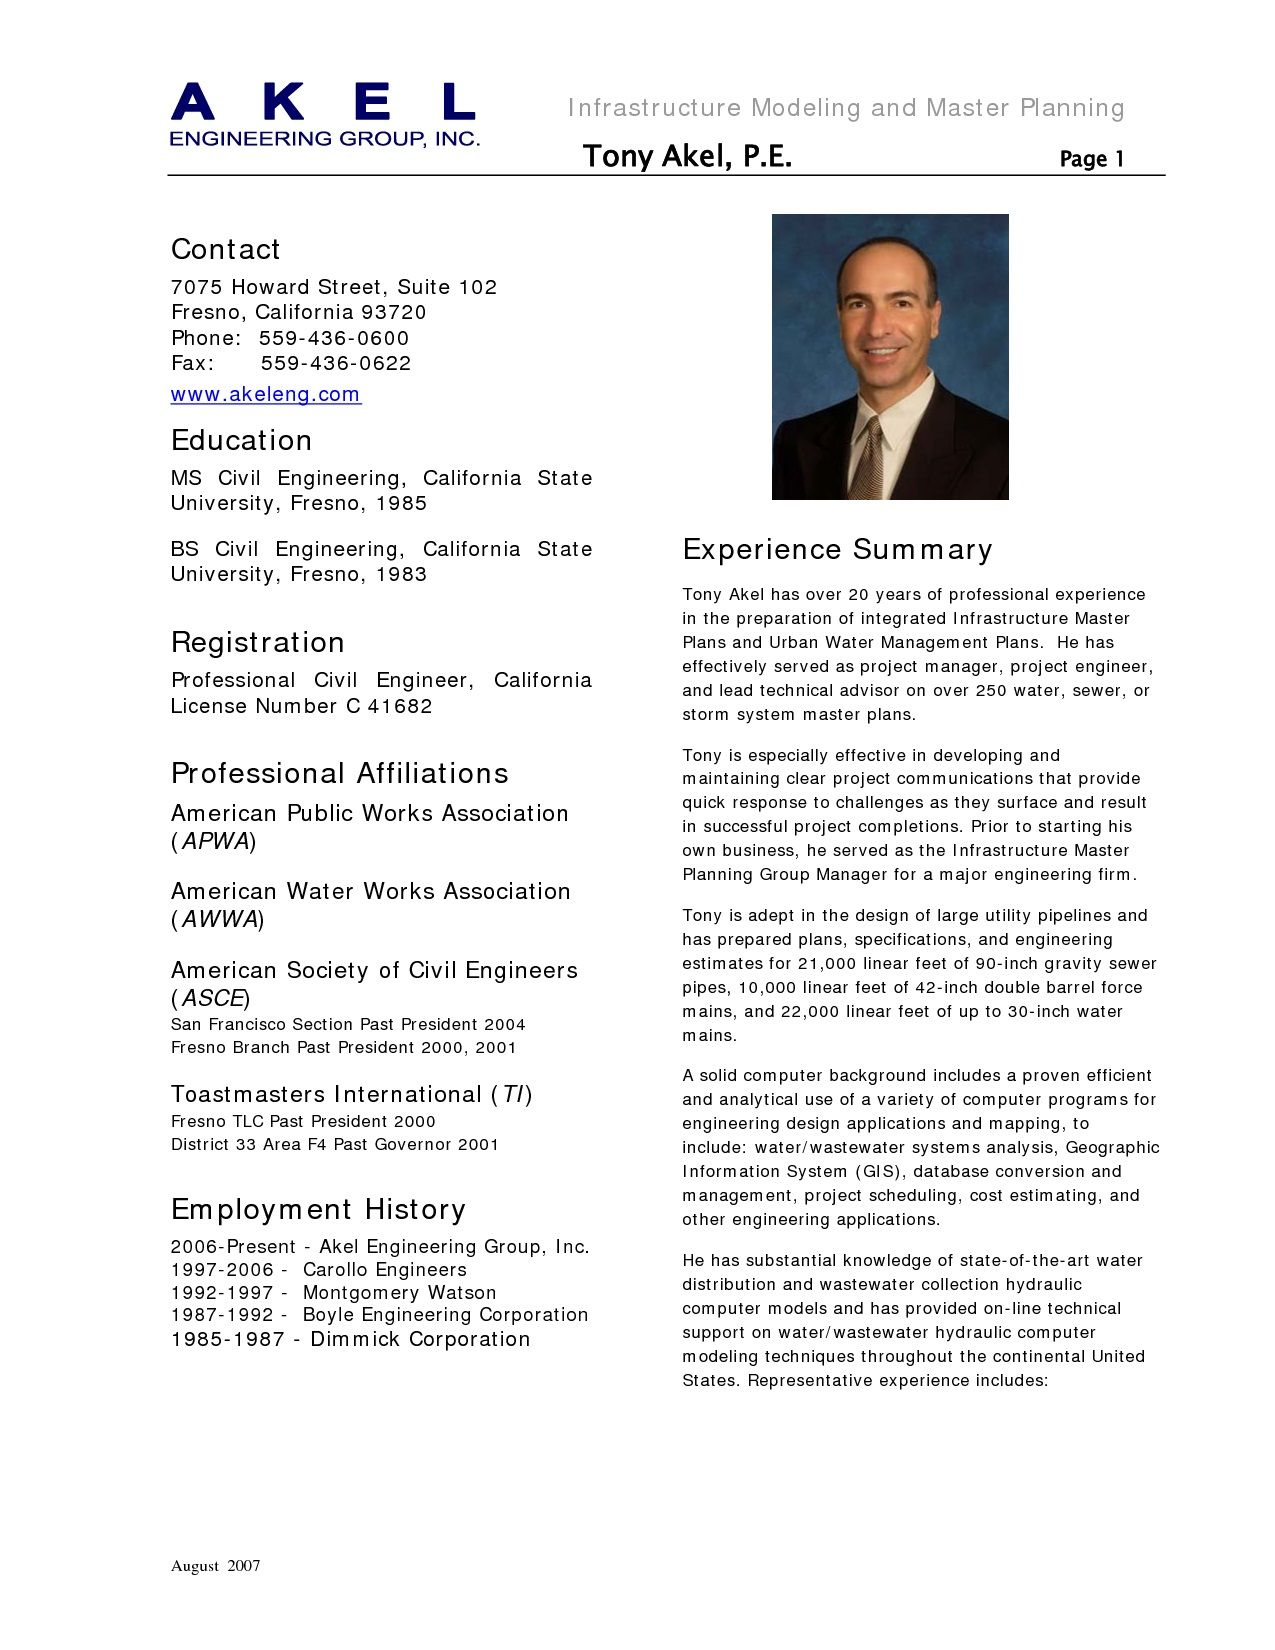 Civil Engineer Resume - http://jobresumesample.com/367/civil ...